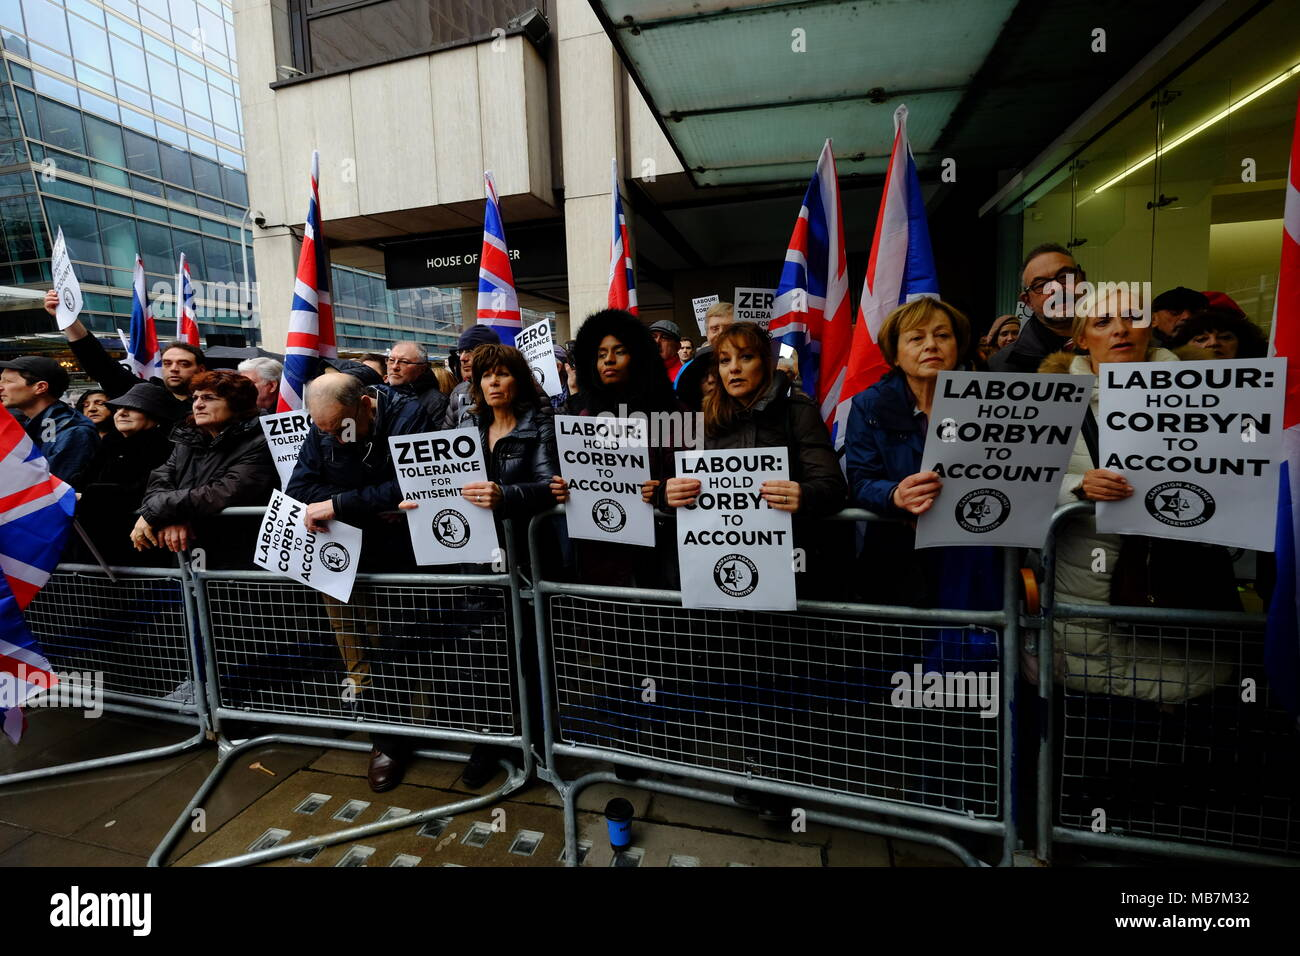 London, UK. 8th April, 2018. protest outside Labour Party headquarters in London against anti-semitism in the Labour party Credit: Rachel Megawhat/Alamy Live News - Stock Image